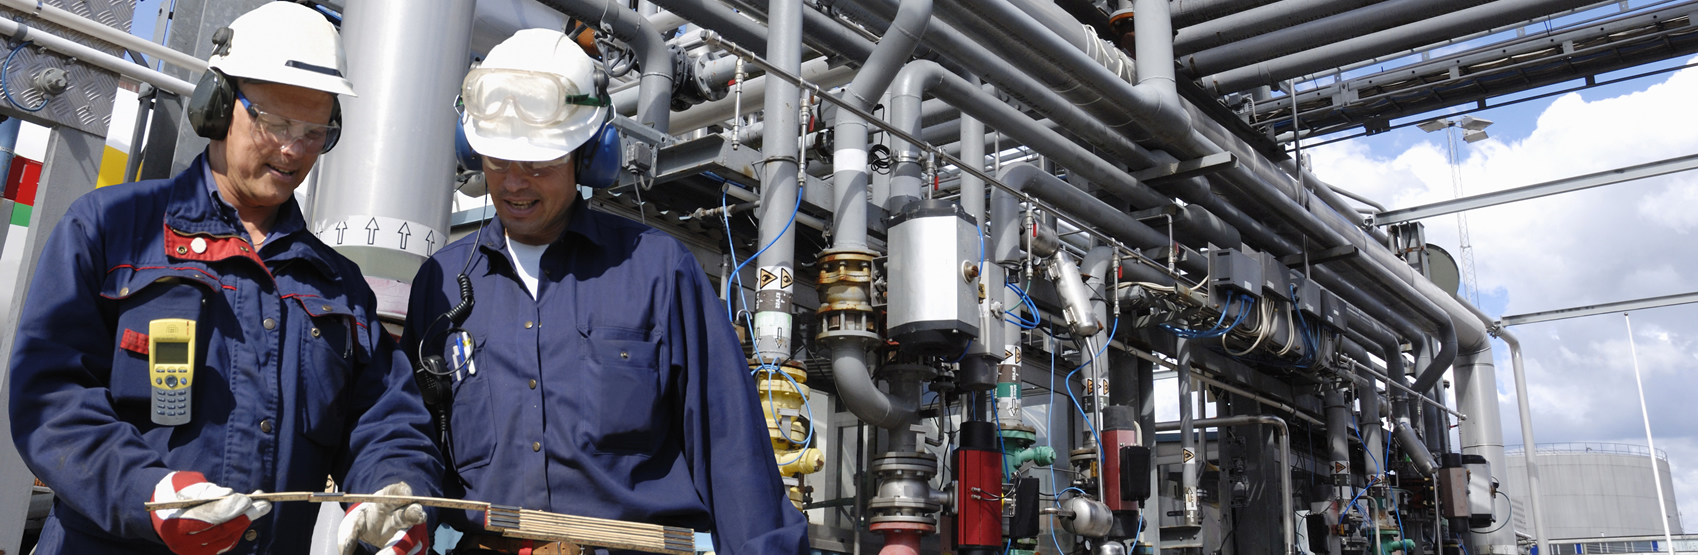 Use of Mass Flow Meters and Controllers in Oil & Gas